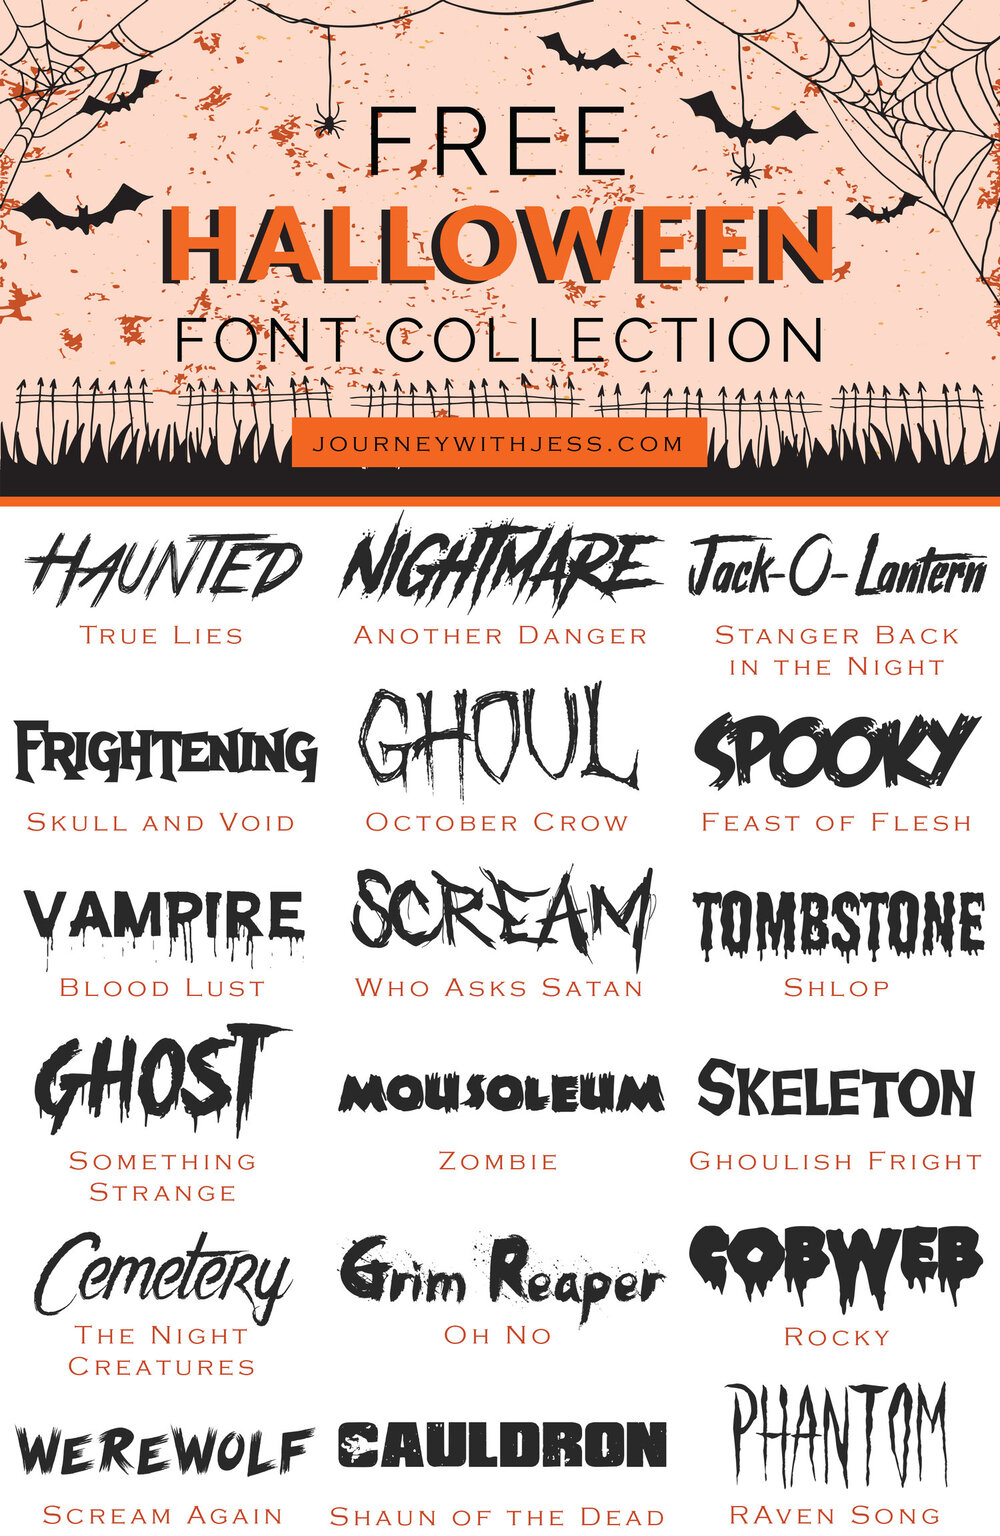 Free Font Collection: Halloween Fonts — Journey With Jess